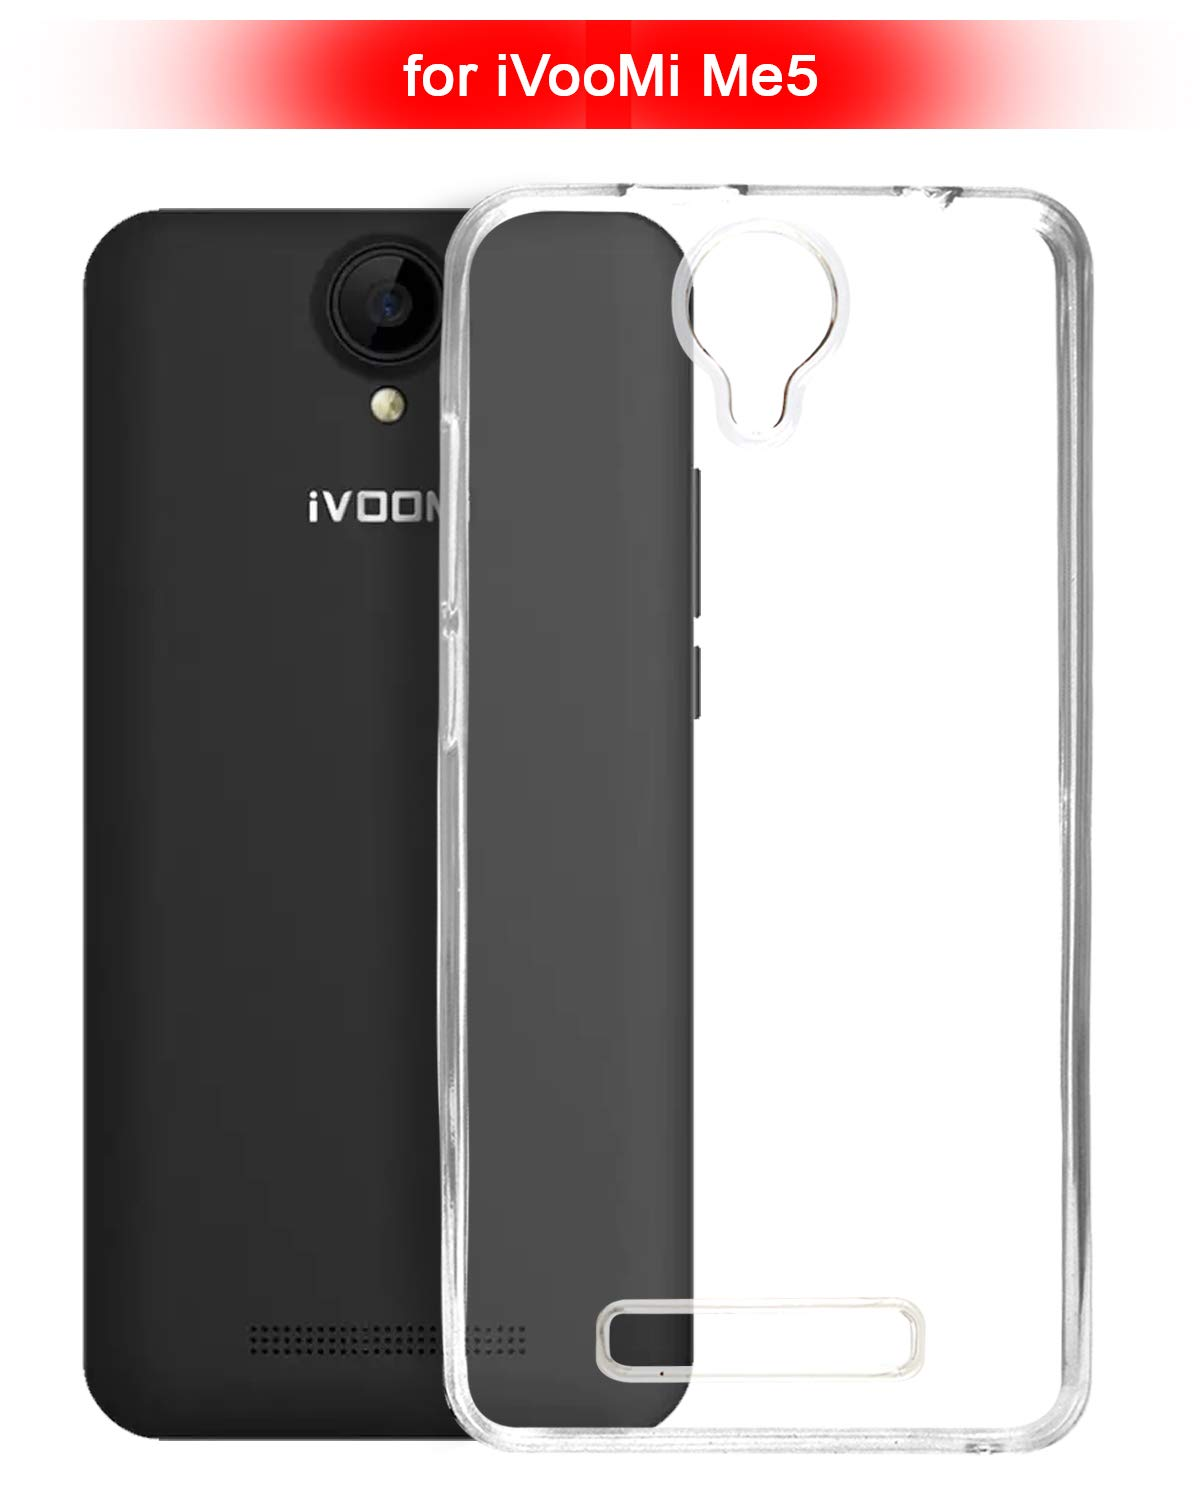 iVooMi Me5 Silicone Soft Back Case Cover (Transparent)